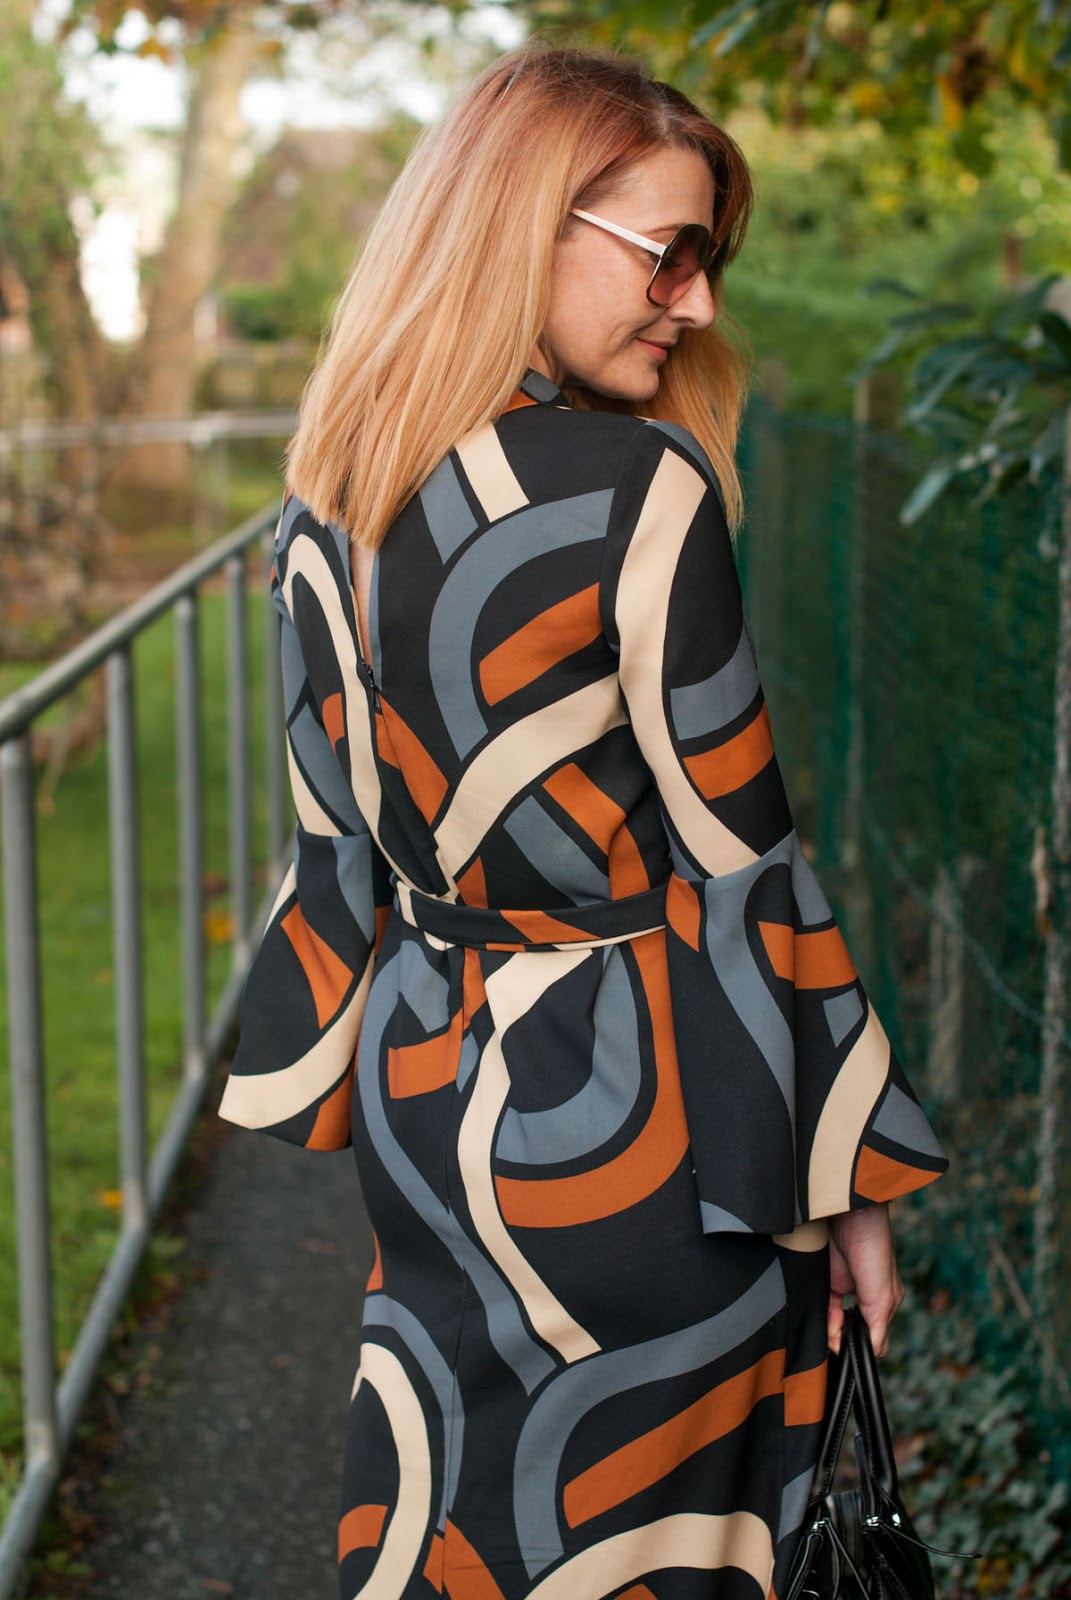 Elegant 70s style patterned midi dress in autumnal colours - bell sleeves, tie waist (Hobbs AW17) | Not Dressed As Lamb, over 40 style